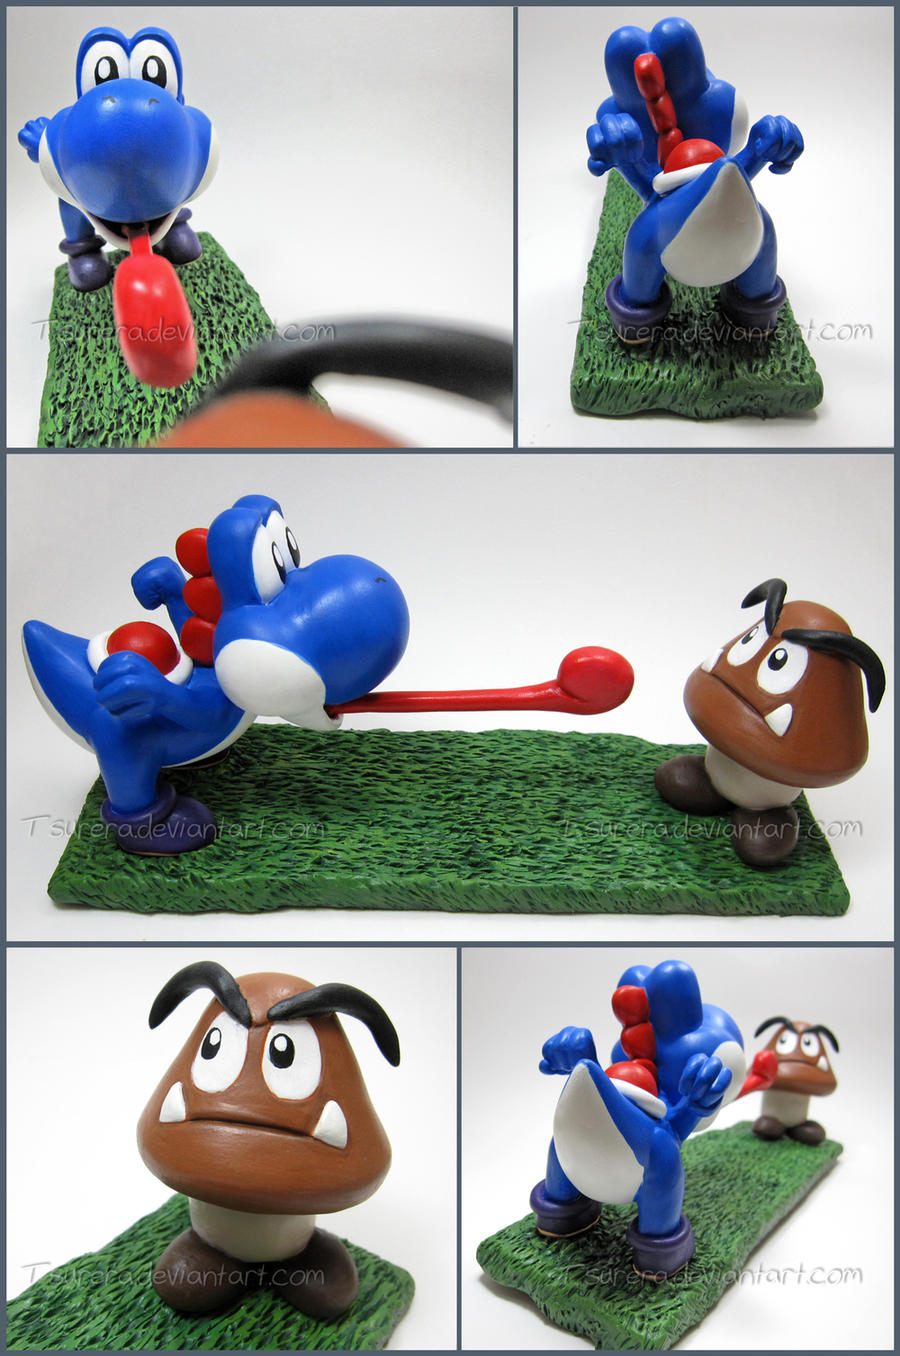 Super Mario- Large Blue Yoshi + Goomba commission by Tsurera